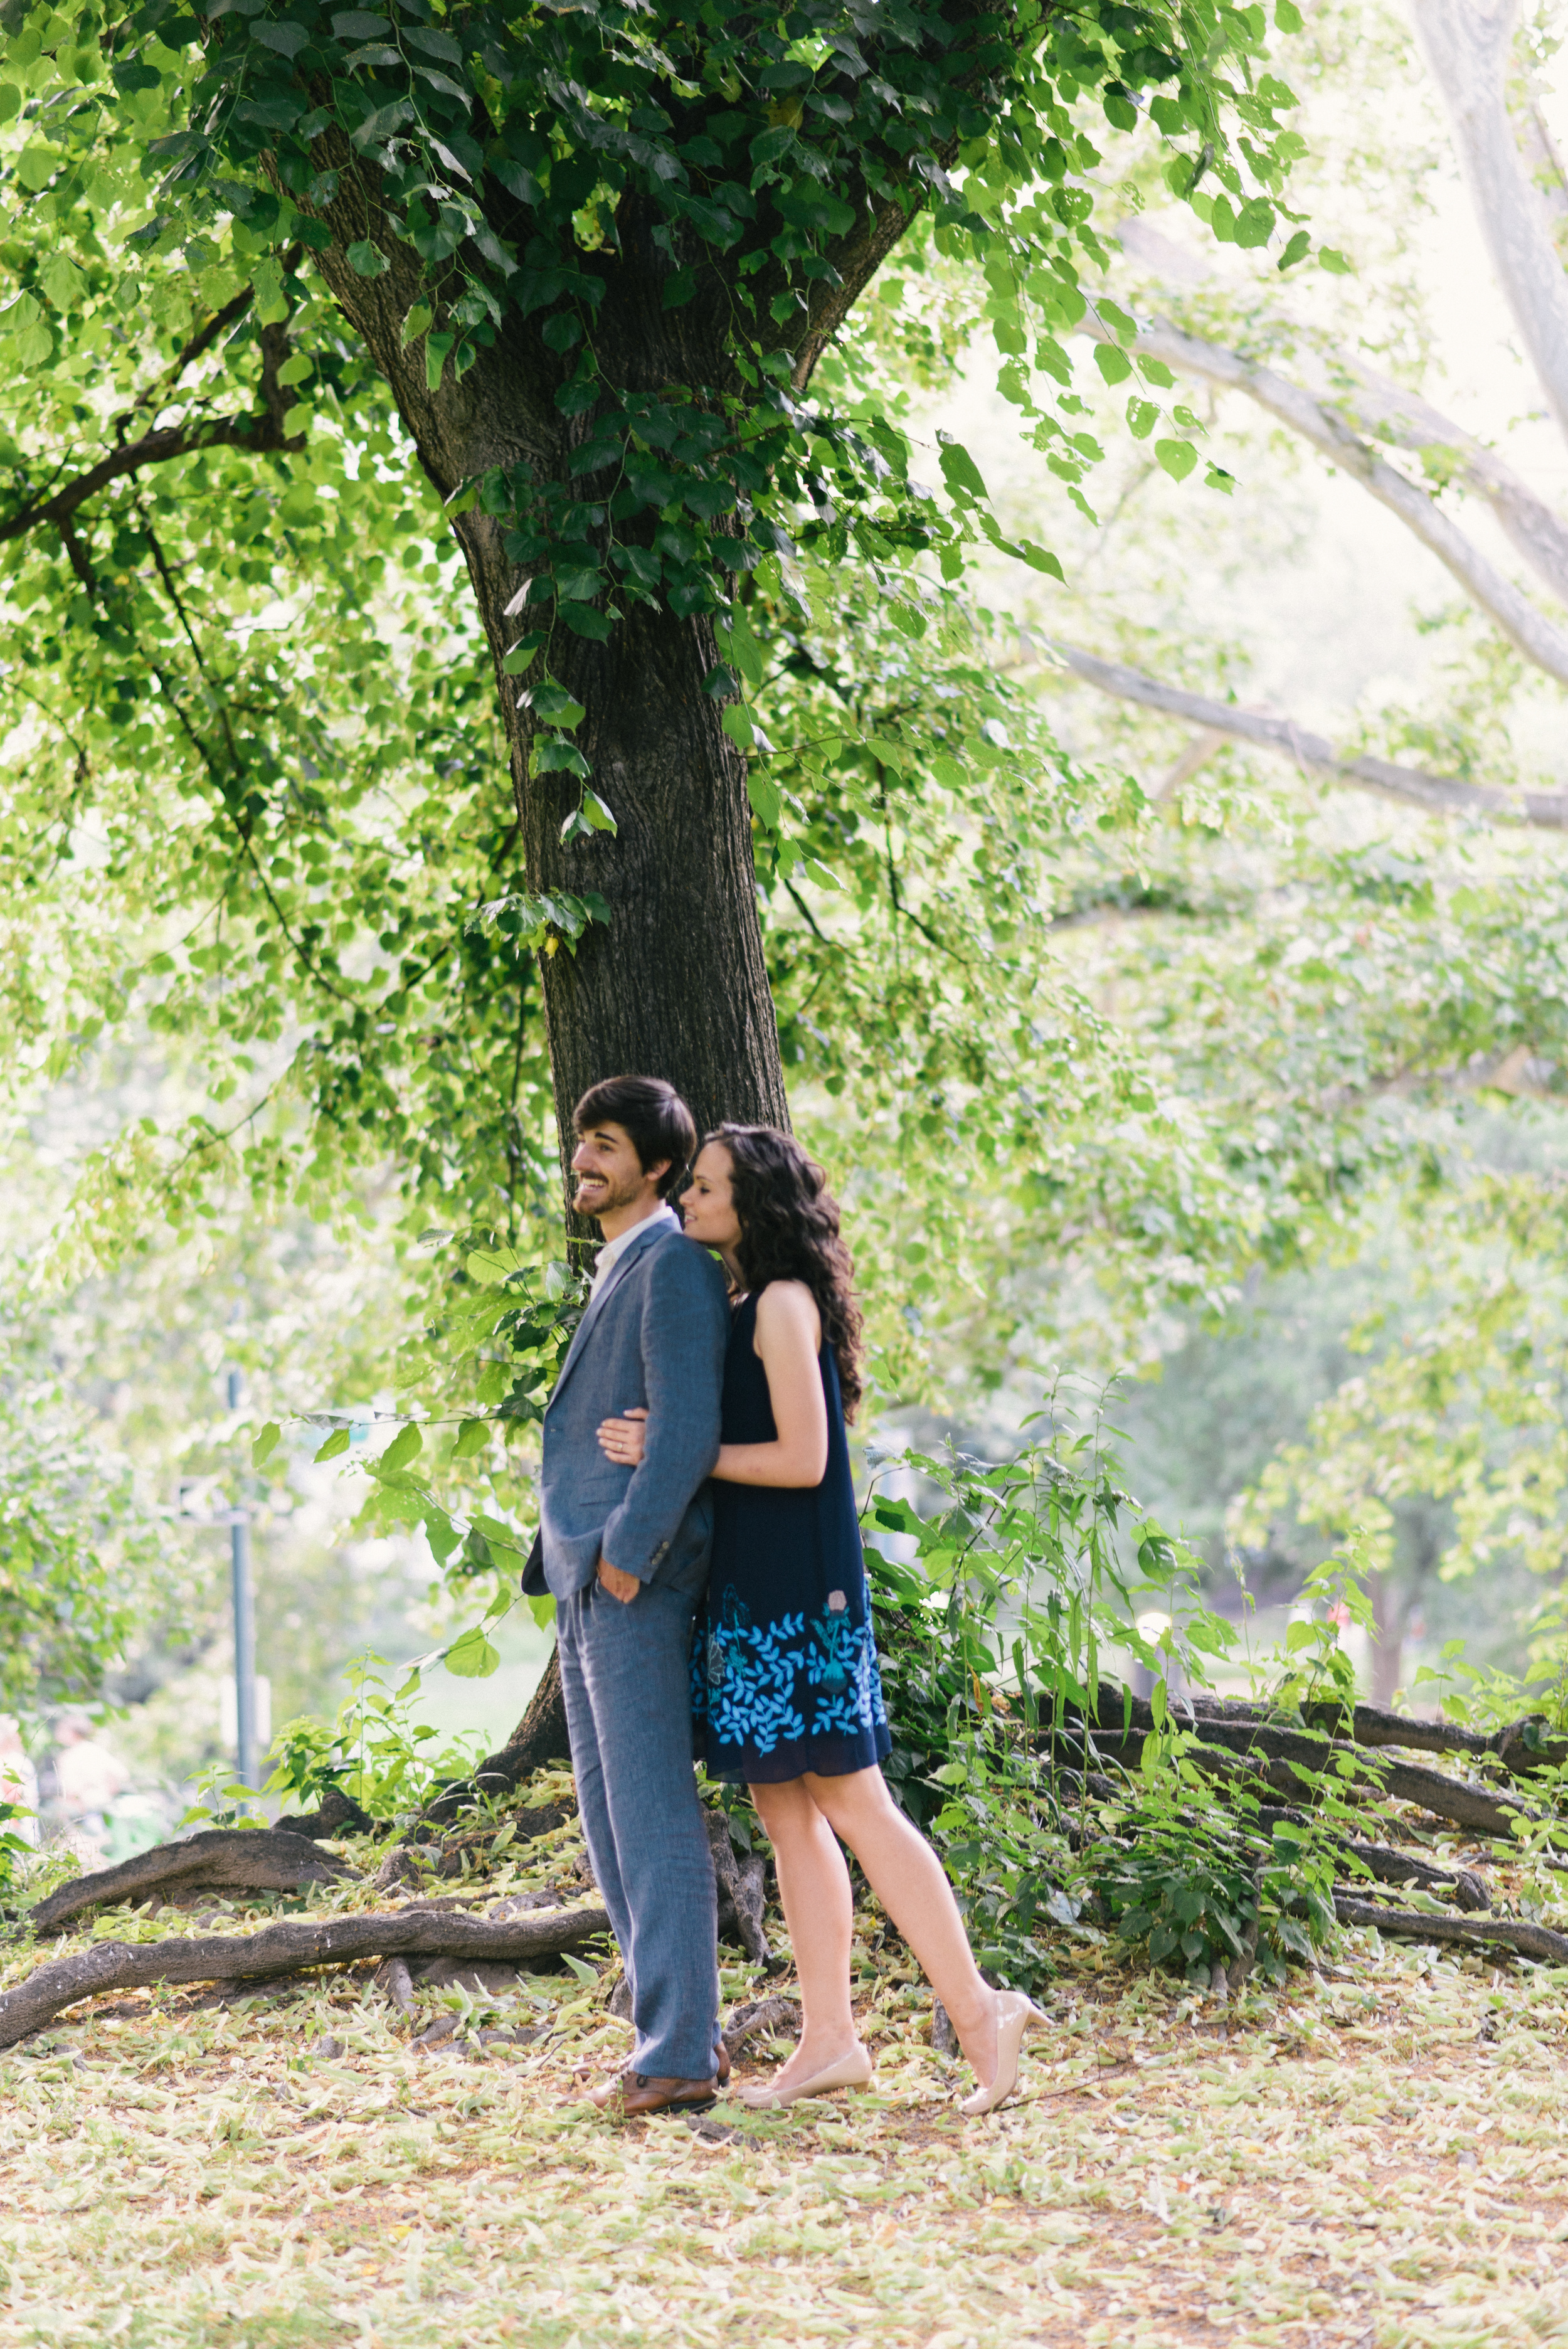 adam-and-tansy-new-york-city-central-park-lincoln-center-bethesda-fountain-engagement-session-june-2016- (74 of 176).jpg